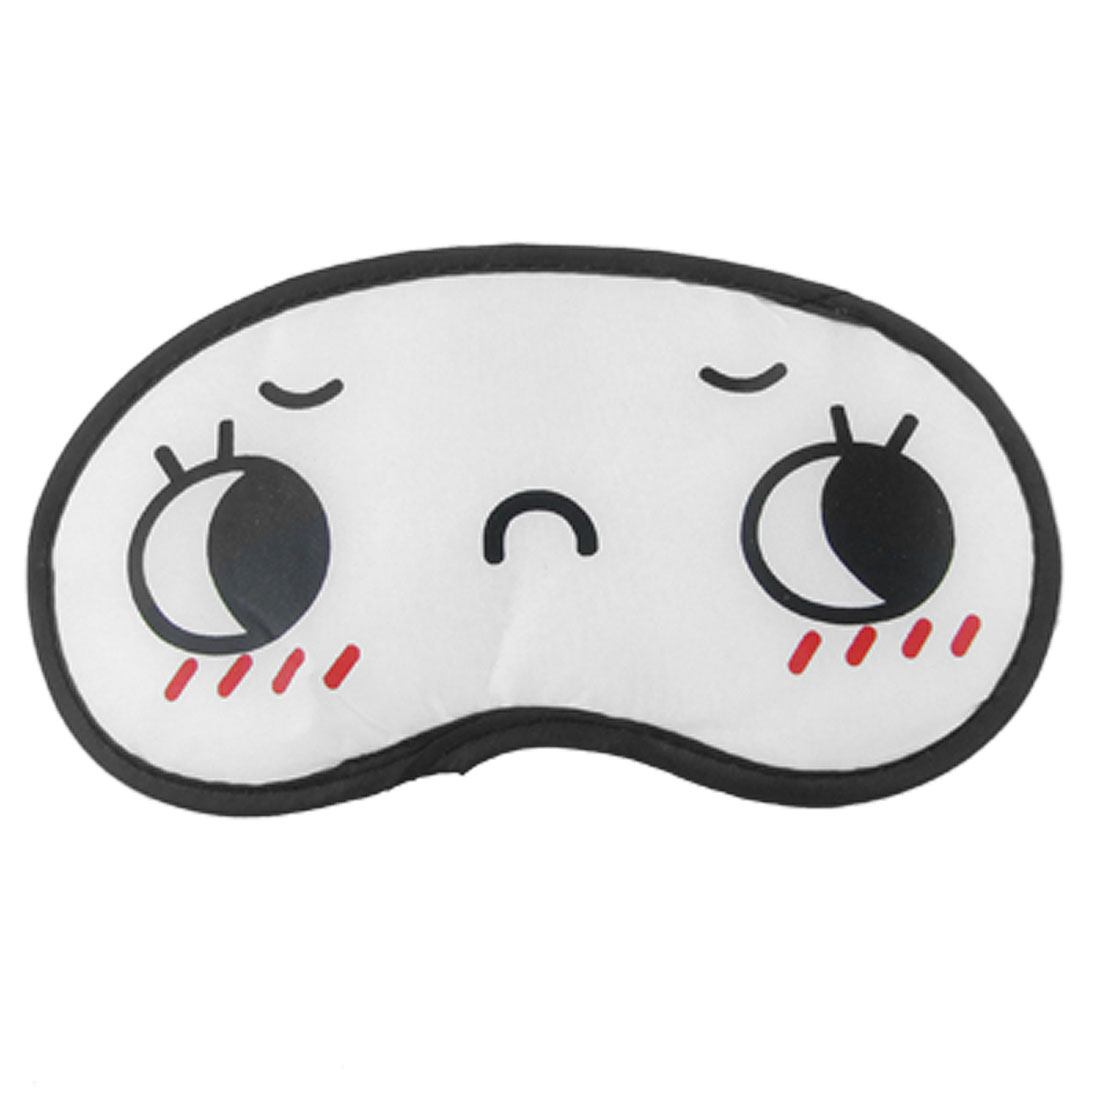 Elastic Band Cartoon Face Print Sleep Eye Shade Mask Cover White